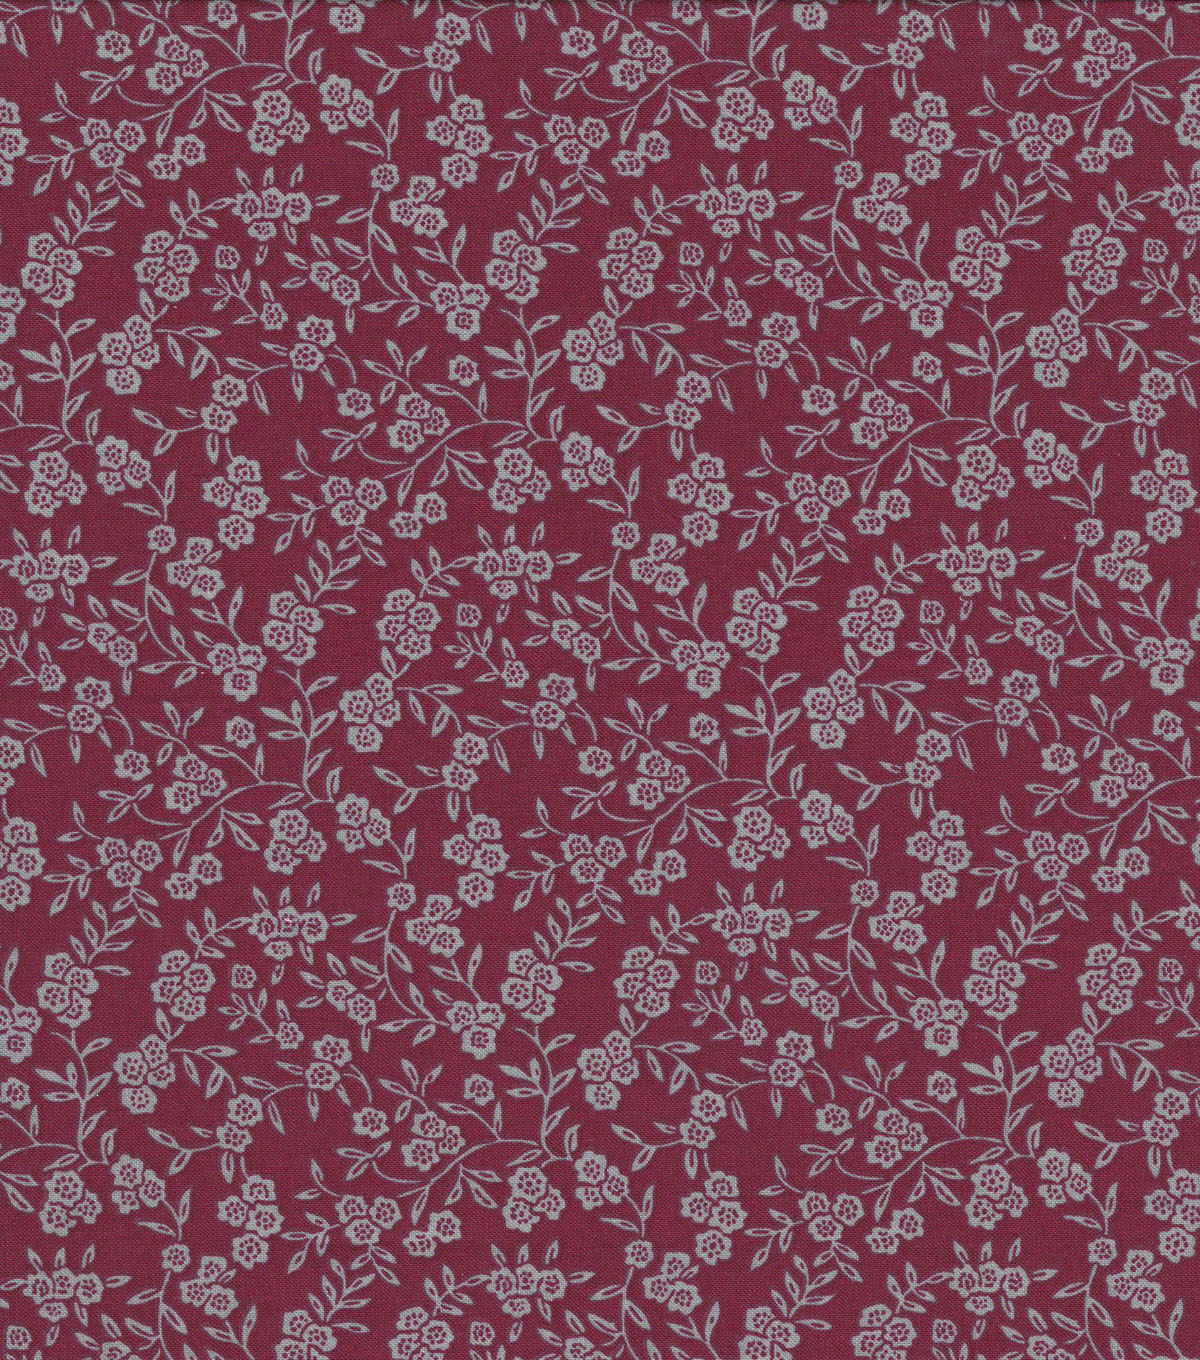 Quilter\u0027s Showcase Cotton Fabric-Delicate Floral on Burgundy